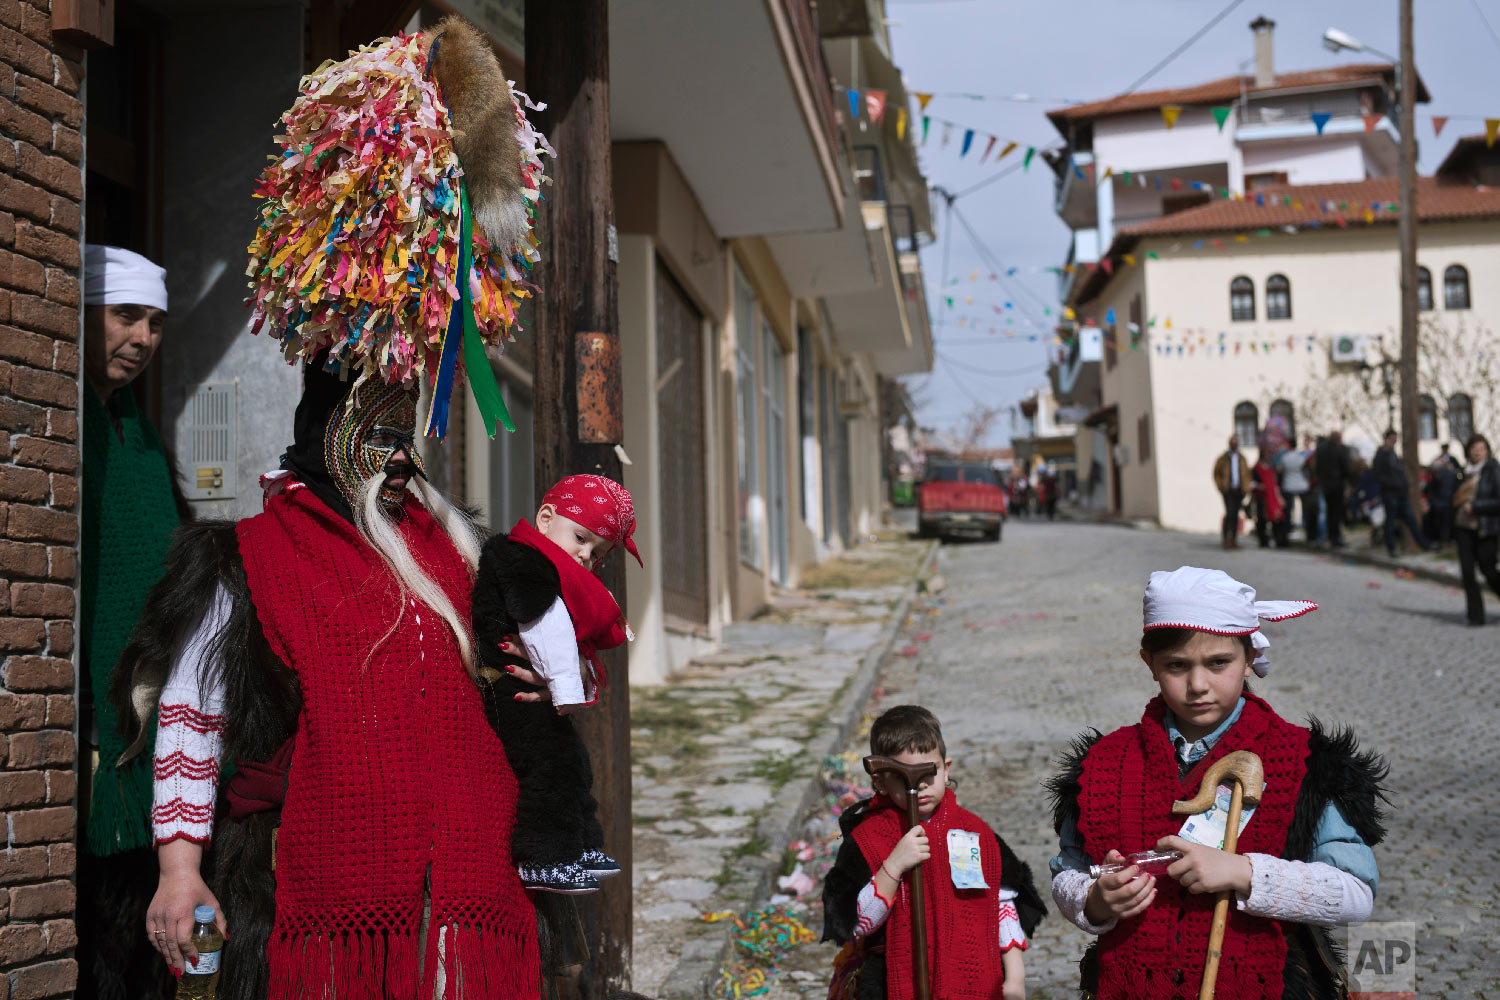 A mother wearing goat hide with bells around here waist and a mask that includes a meter tall, ribbon-covered formation topped with a foxtail, holds her baby as her five member family prepare to take part in a Clean Monday festival in the village of Sohos, northern Greece on March 11, 2019. (AP Photo/Petros Giannakouris)